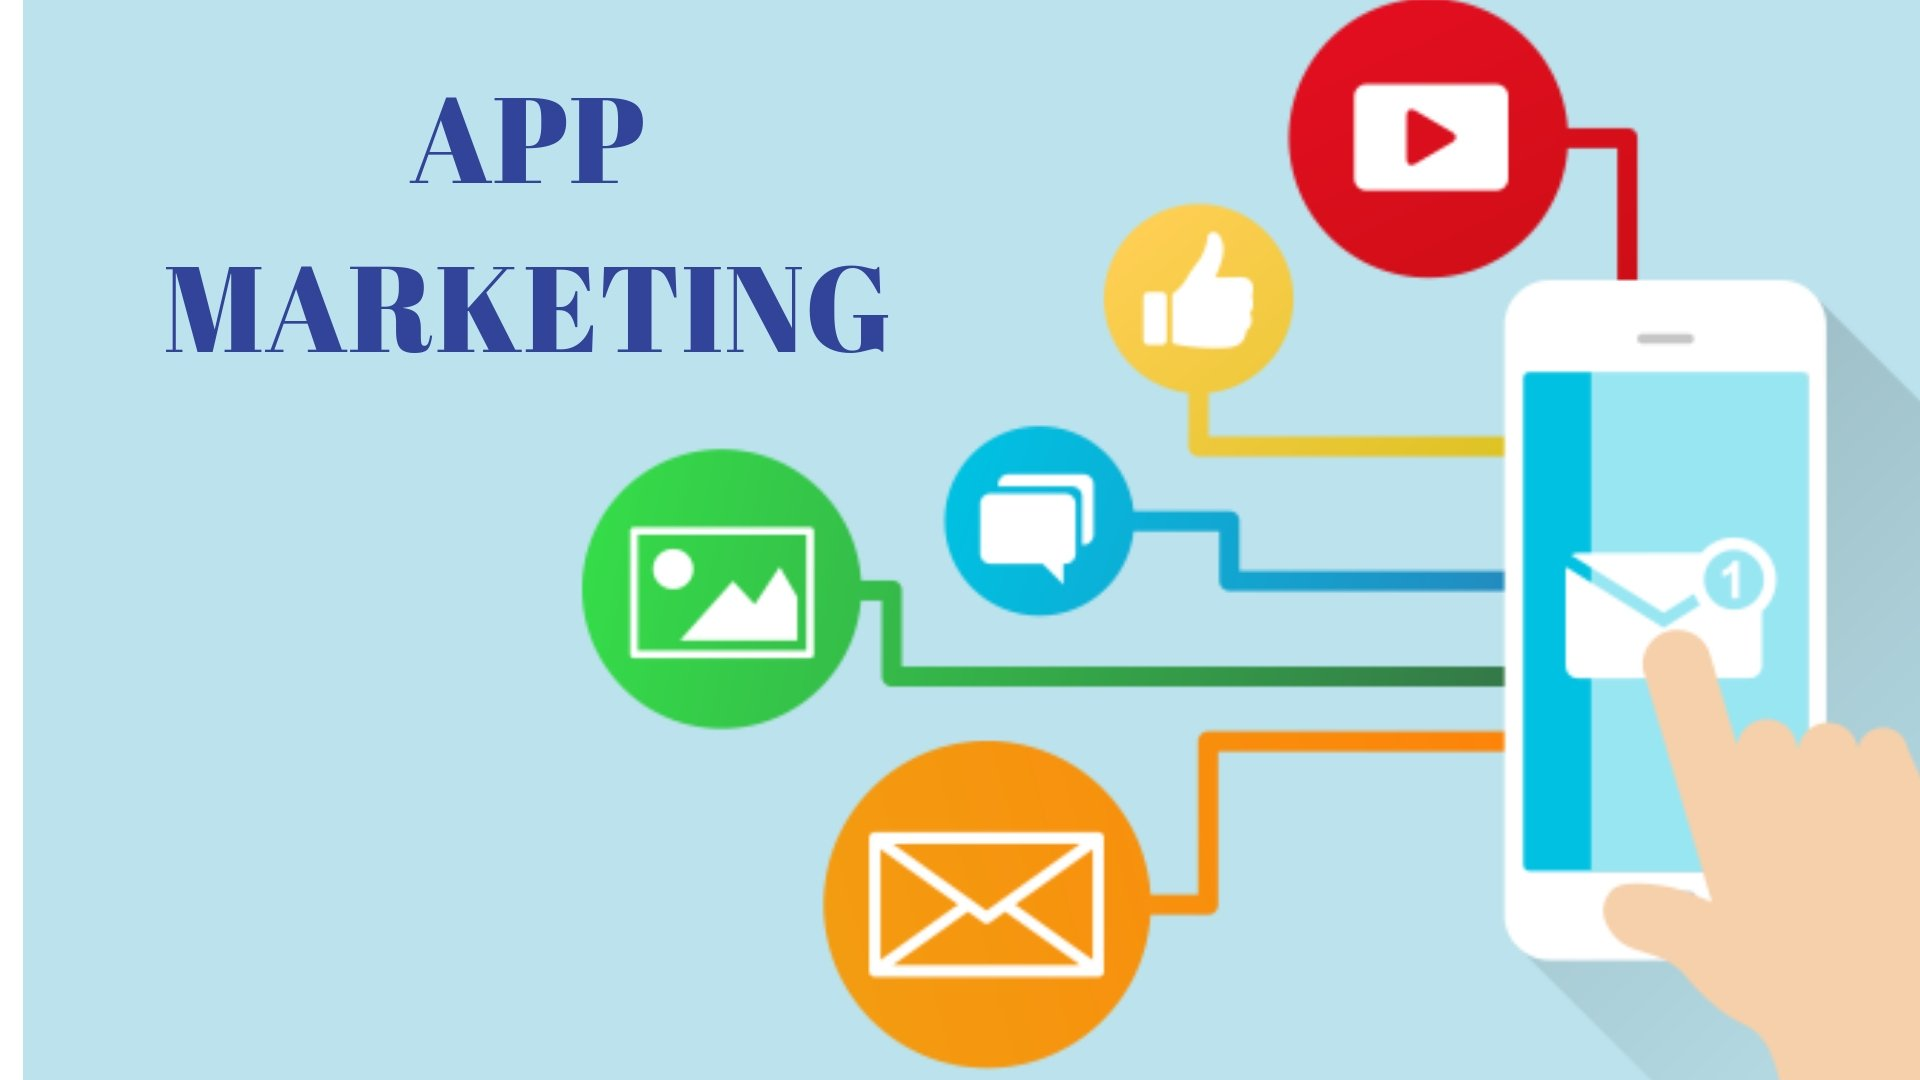 App marketing: territorio noto al web marketing